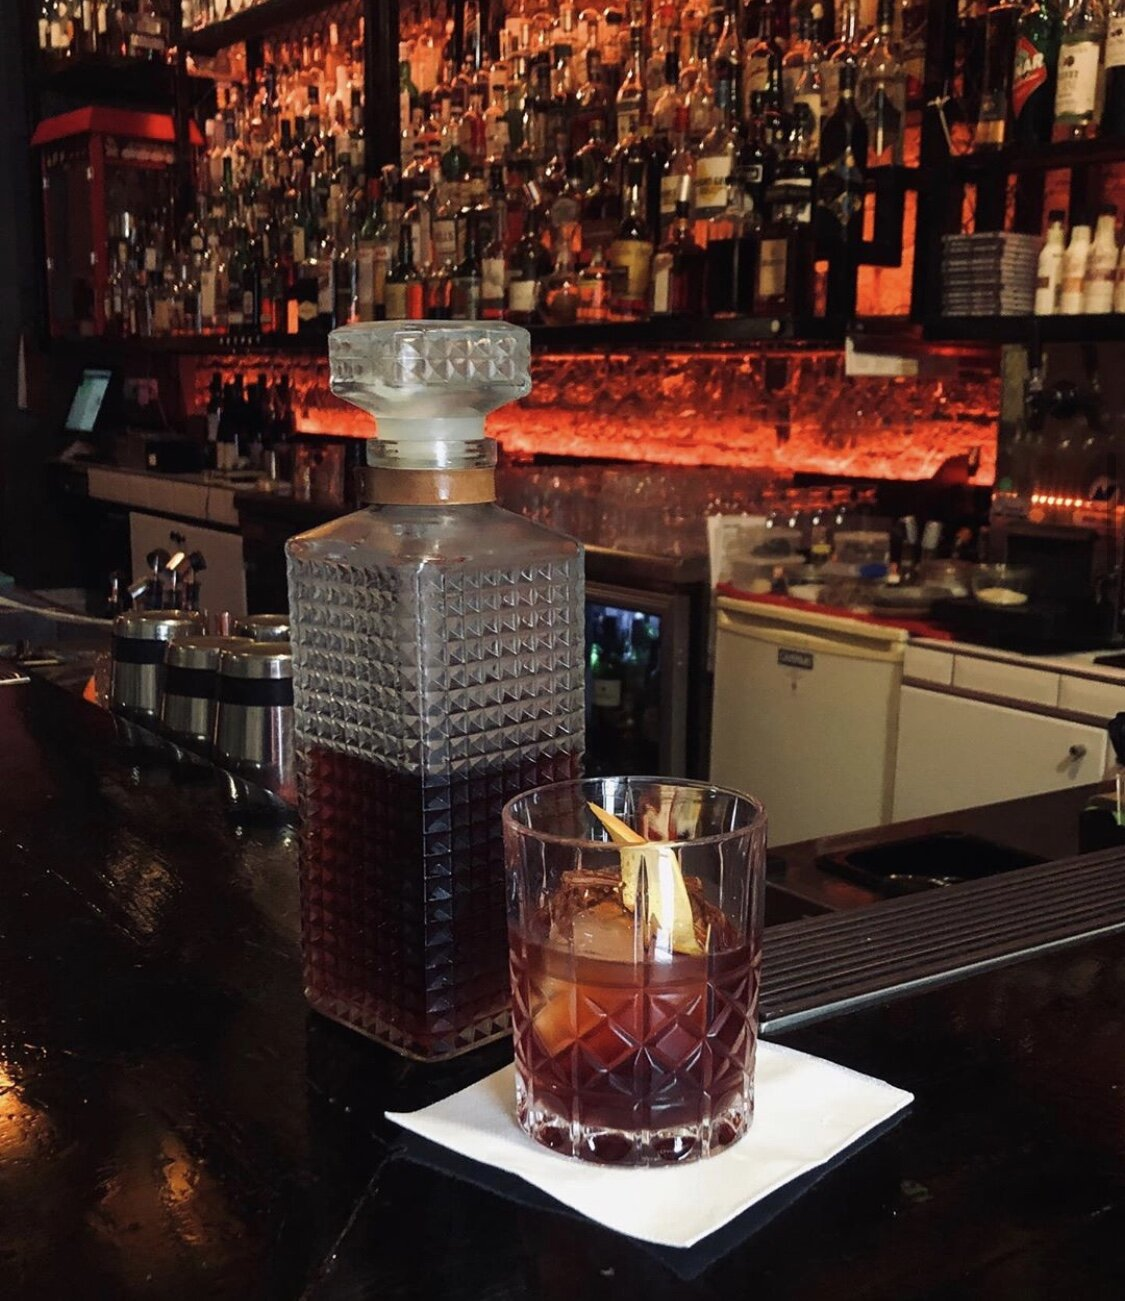 Negroni happy hour - Classic Negroni.$15 from 4pm - 6pm Wednesday - Saturday